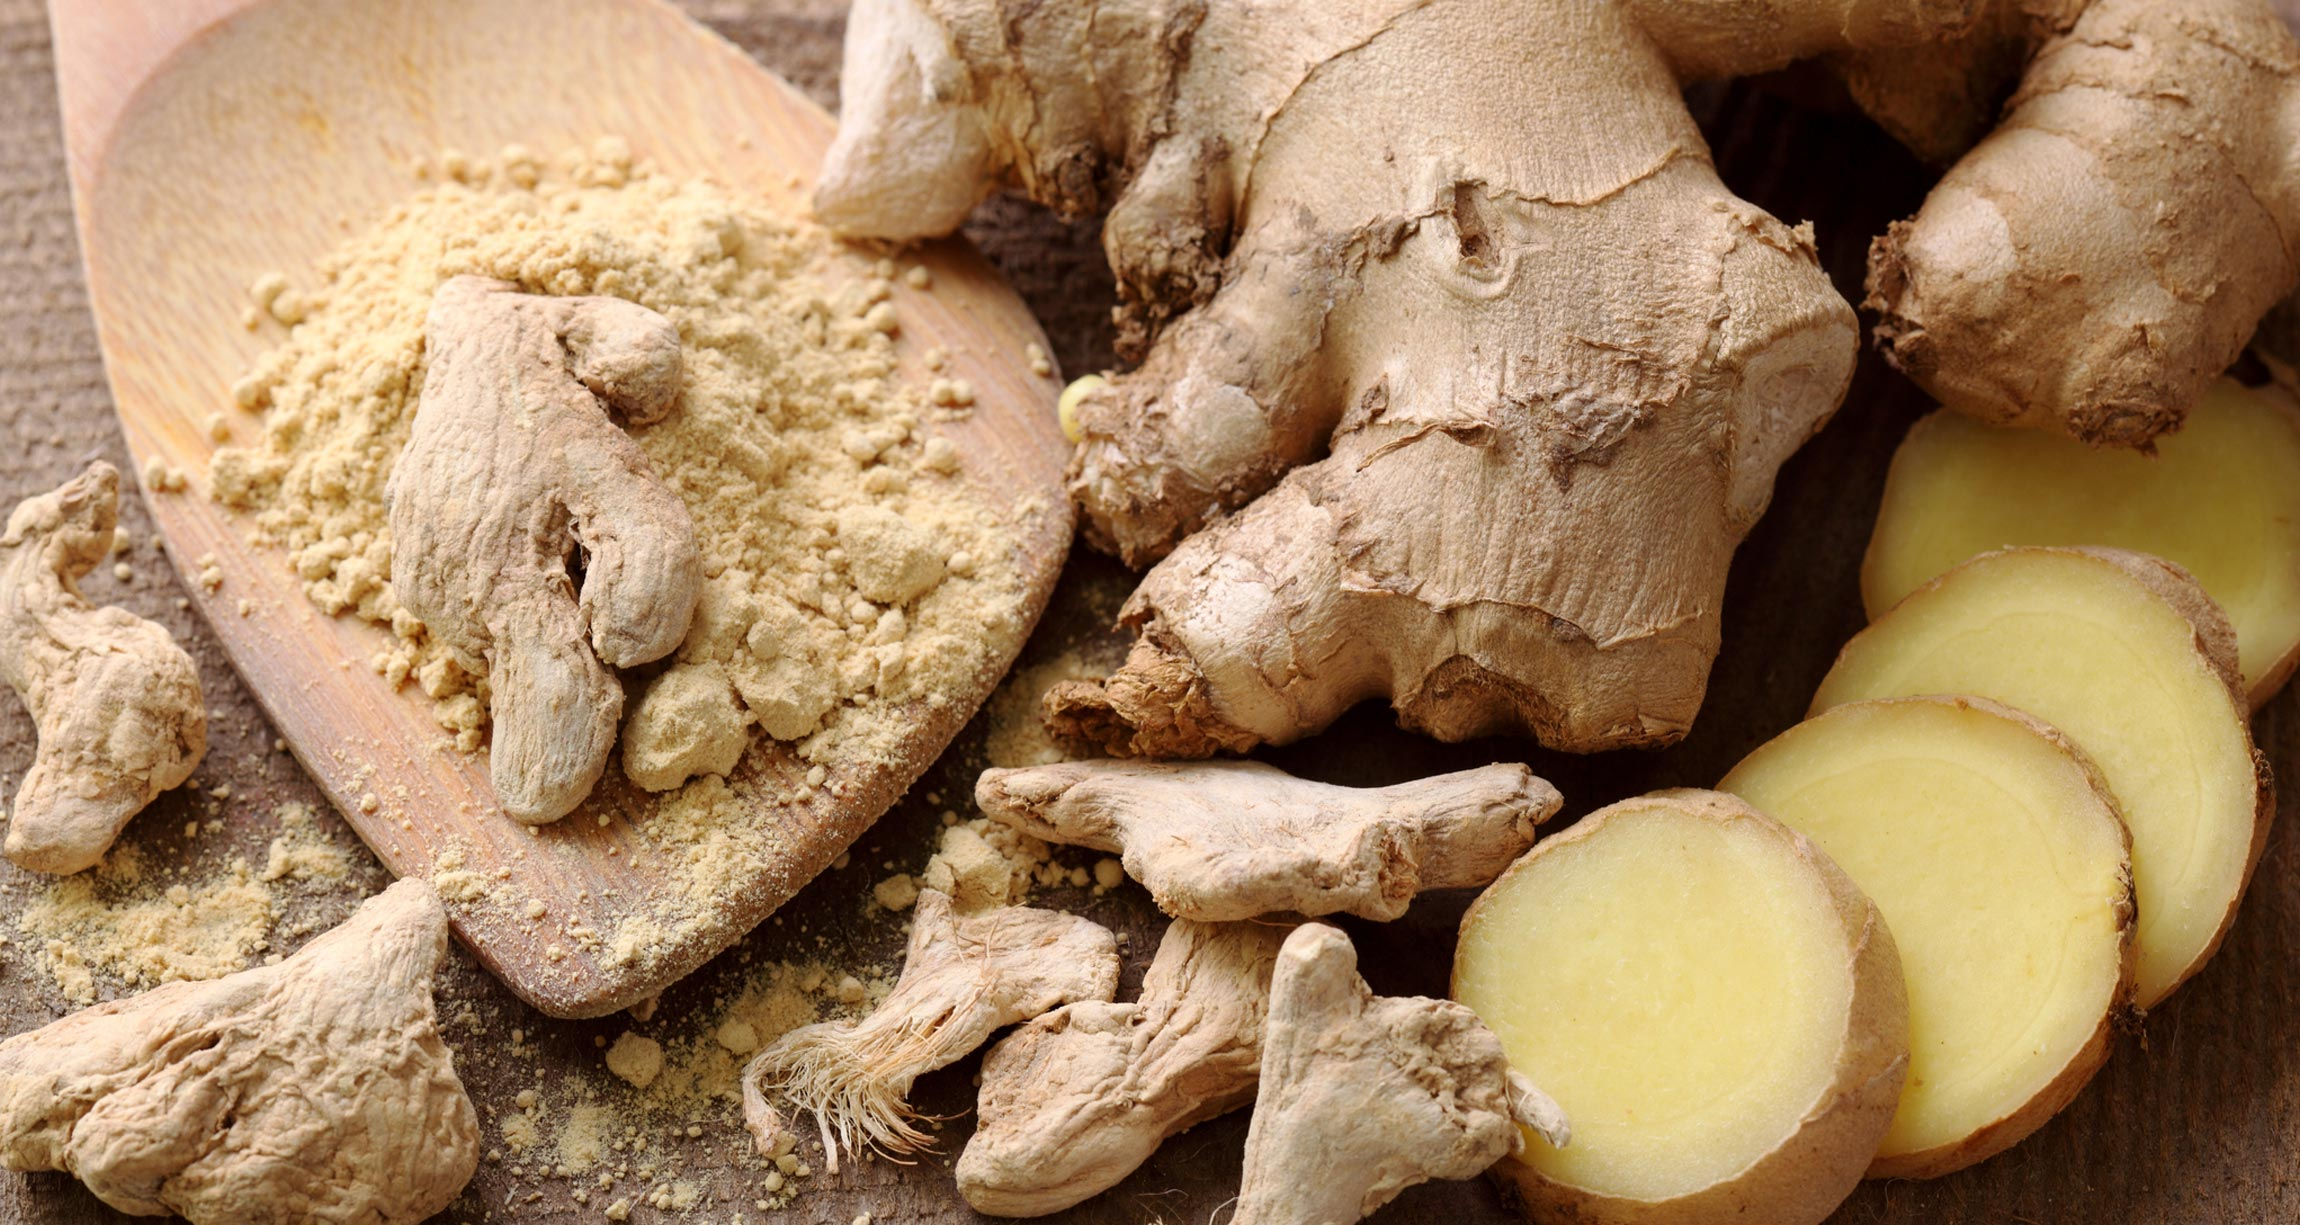 ground, cut, and whole ginger root on table